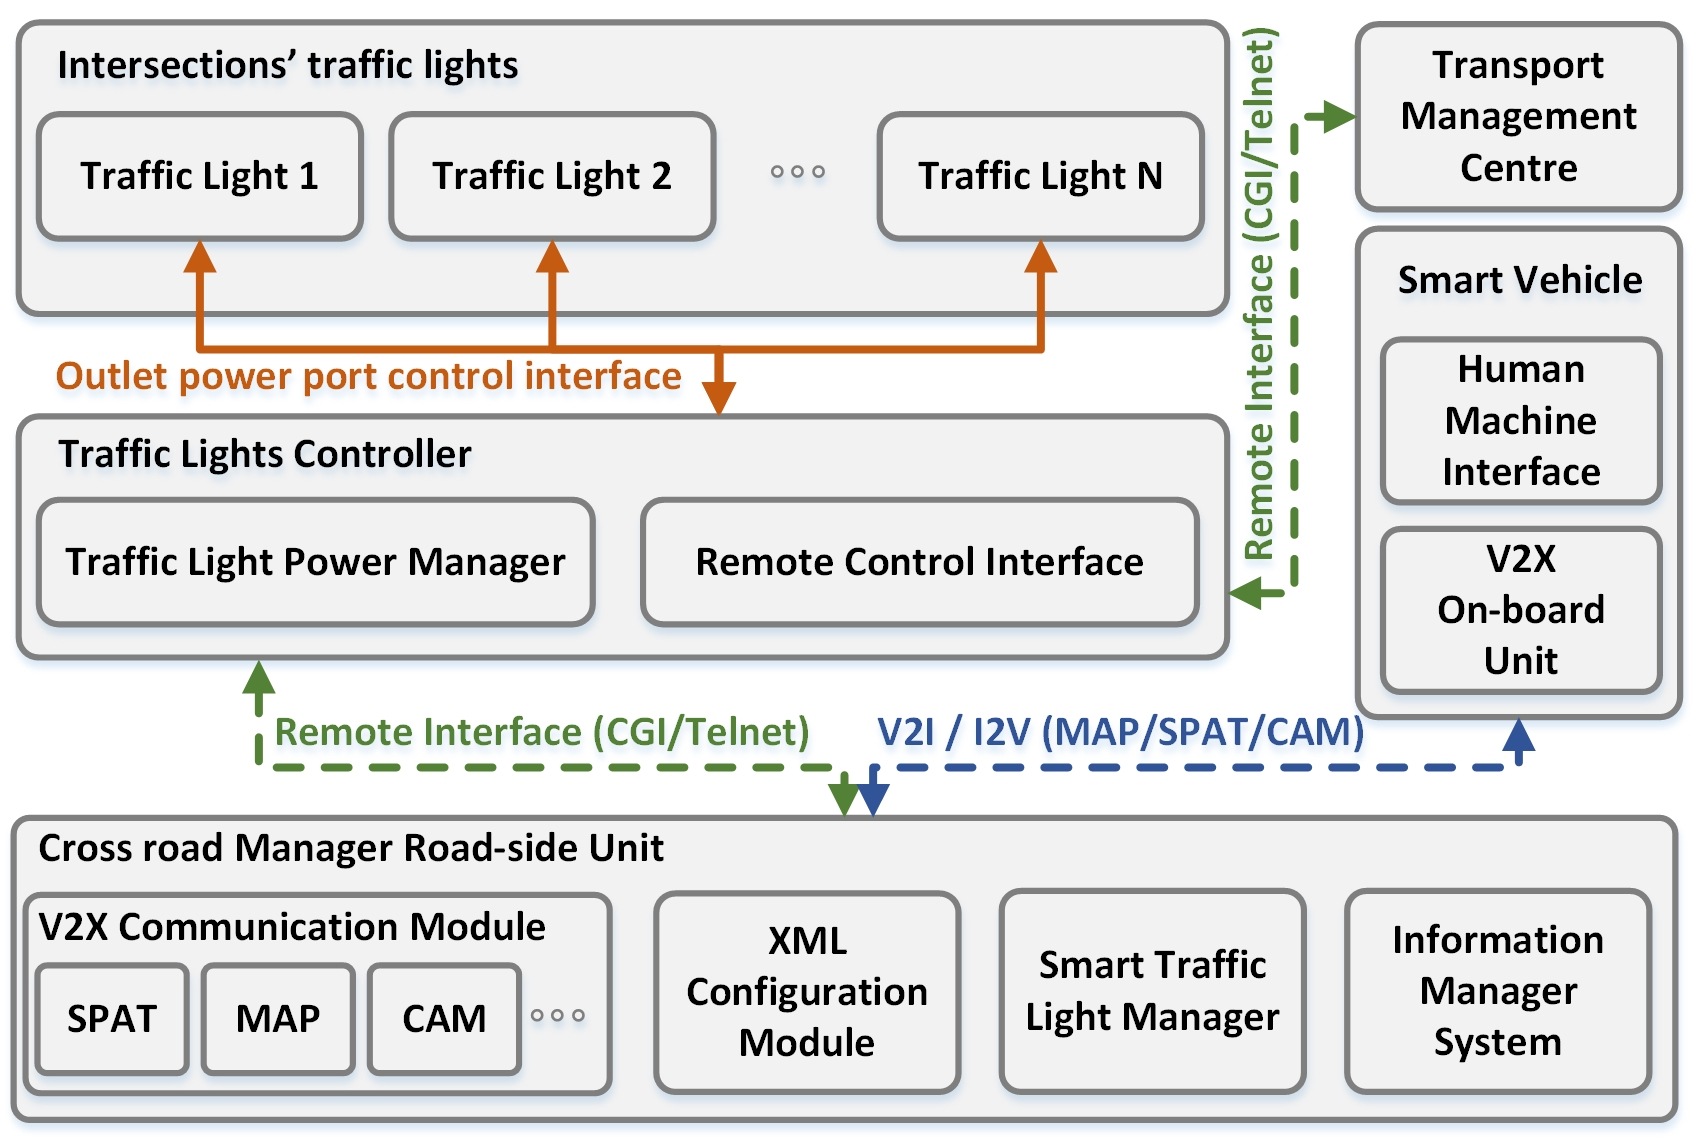 News Medianets Laboratory Block Diagram Of The Human Computer Interface System Intelligent Traffic Light Controller Systems Paper Presentation On Itst 2017